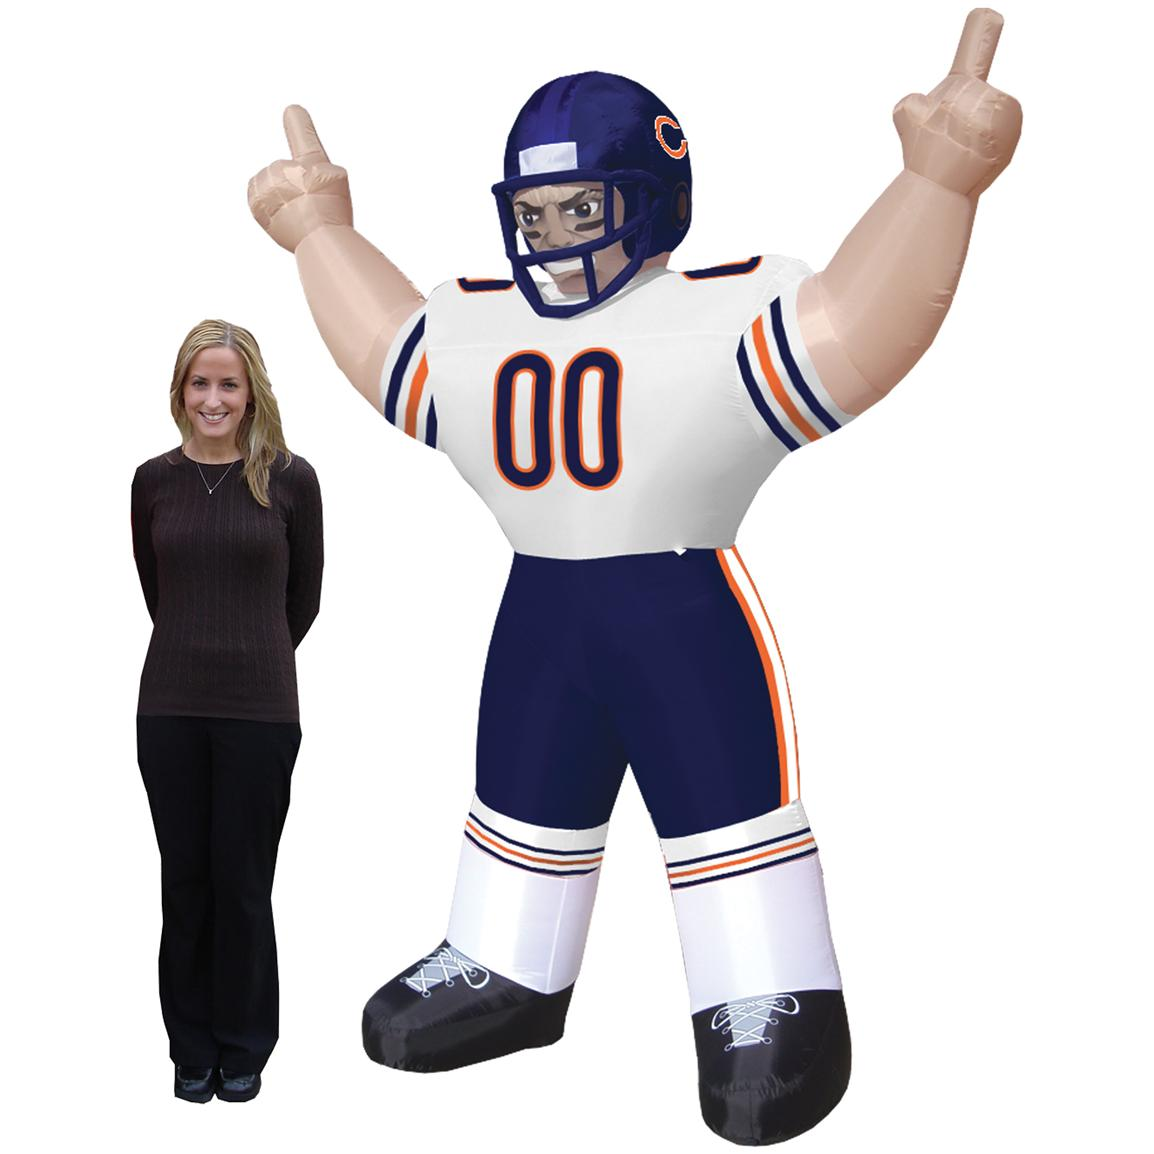 Inflatable Images® Inflatable NFL 8' Tiny